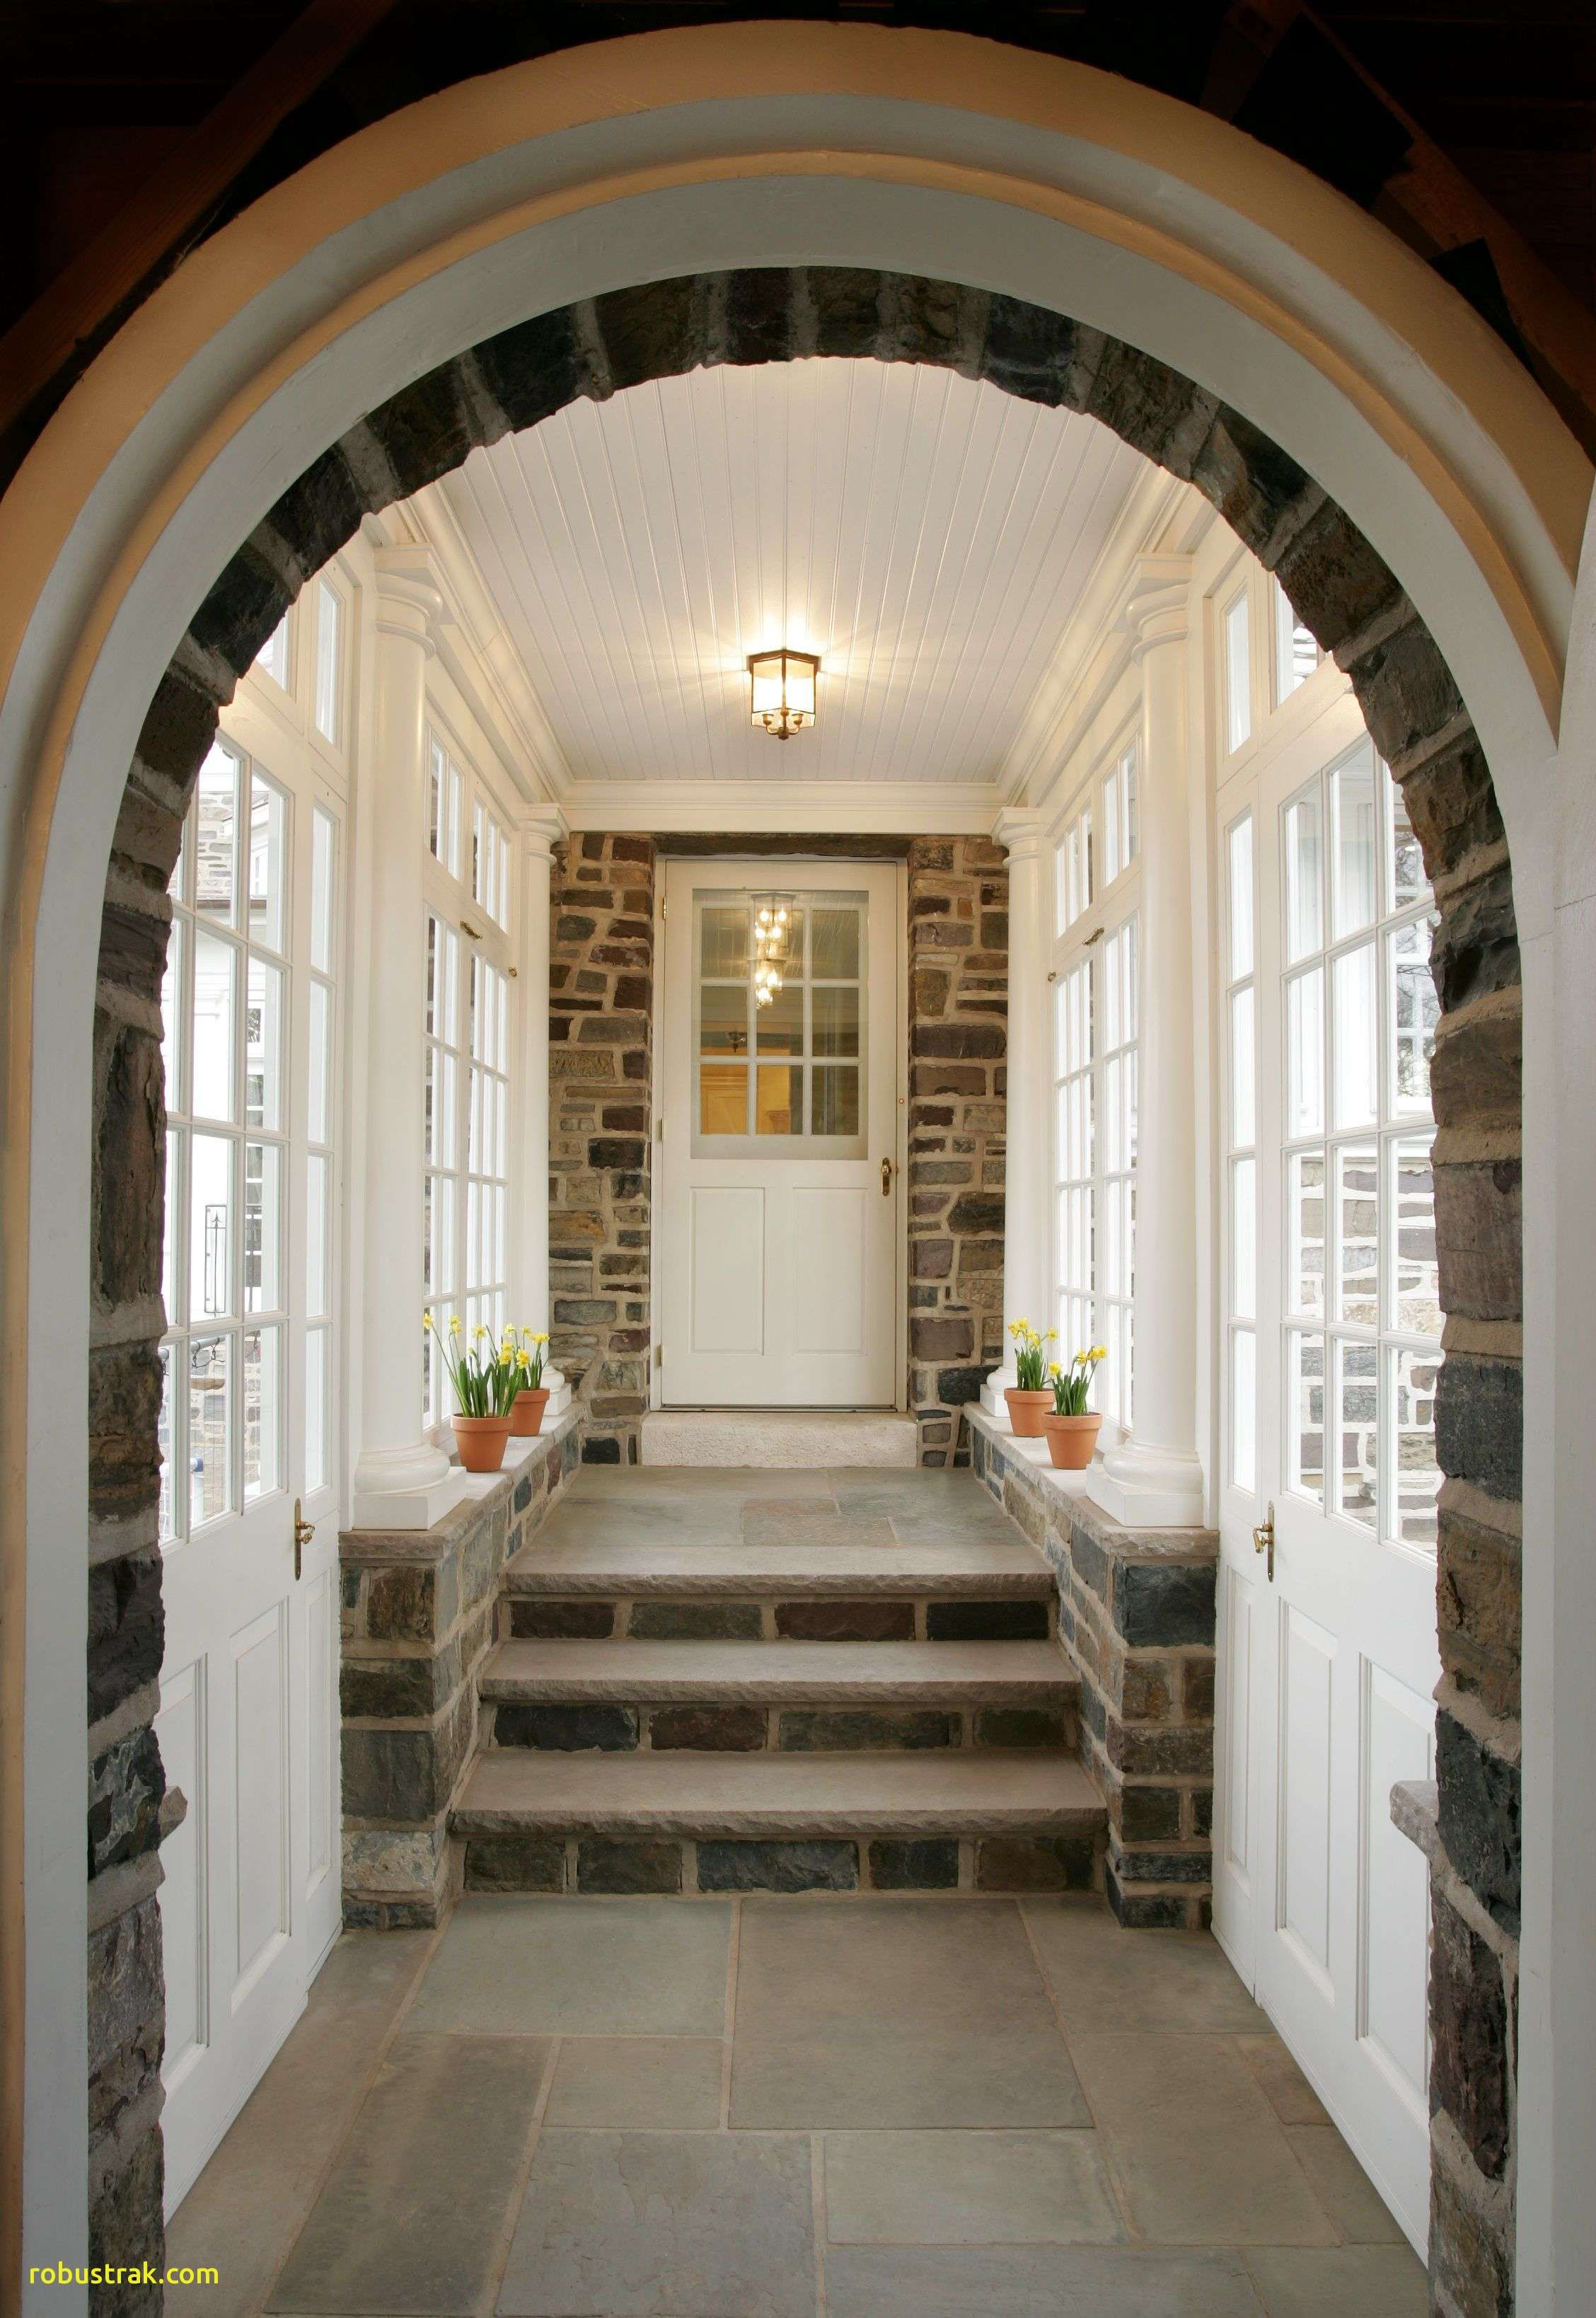 Enclosed Breezeway The Stone Archway Frames The Entrance Into The Breezeway From The Garage Tuscan Columns Clerestory Glass Princeton Houses Breezeway House